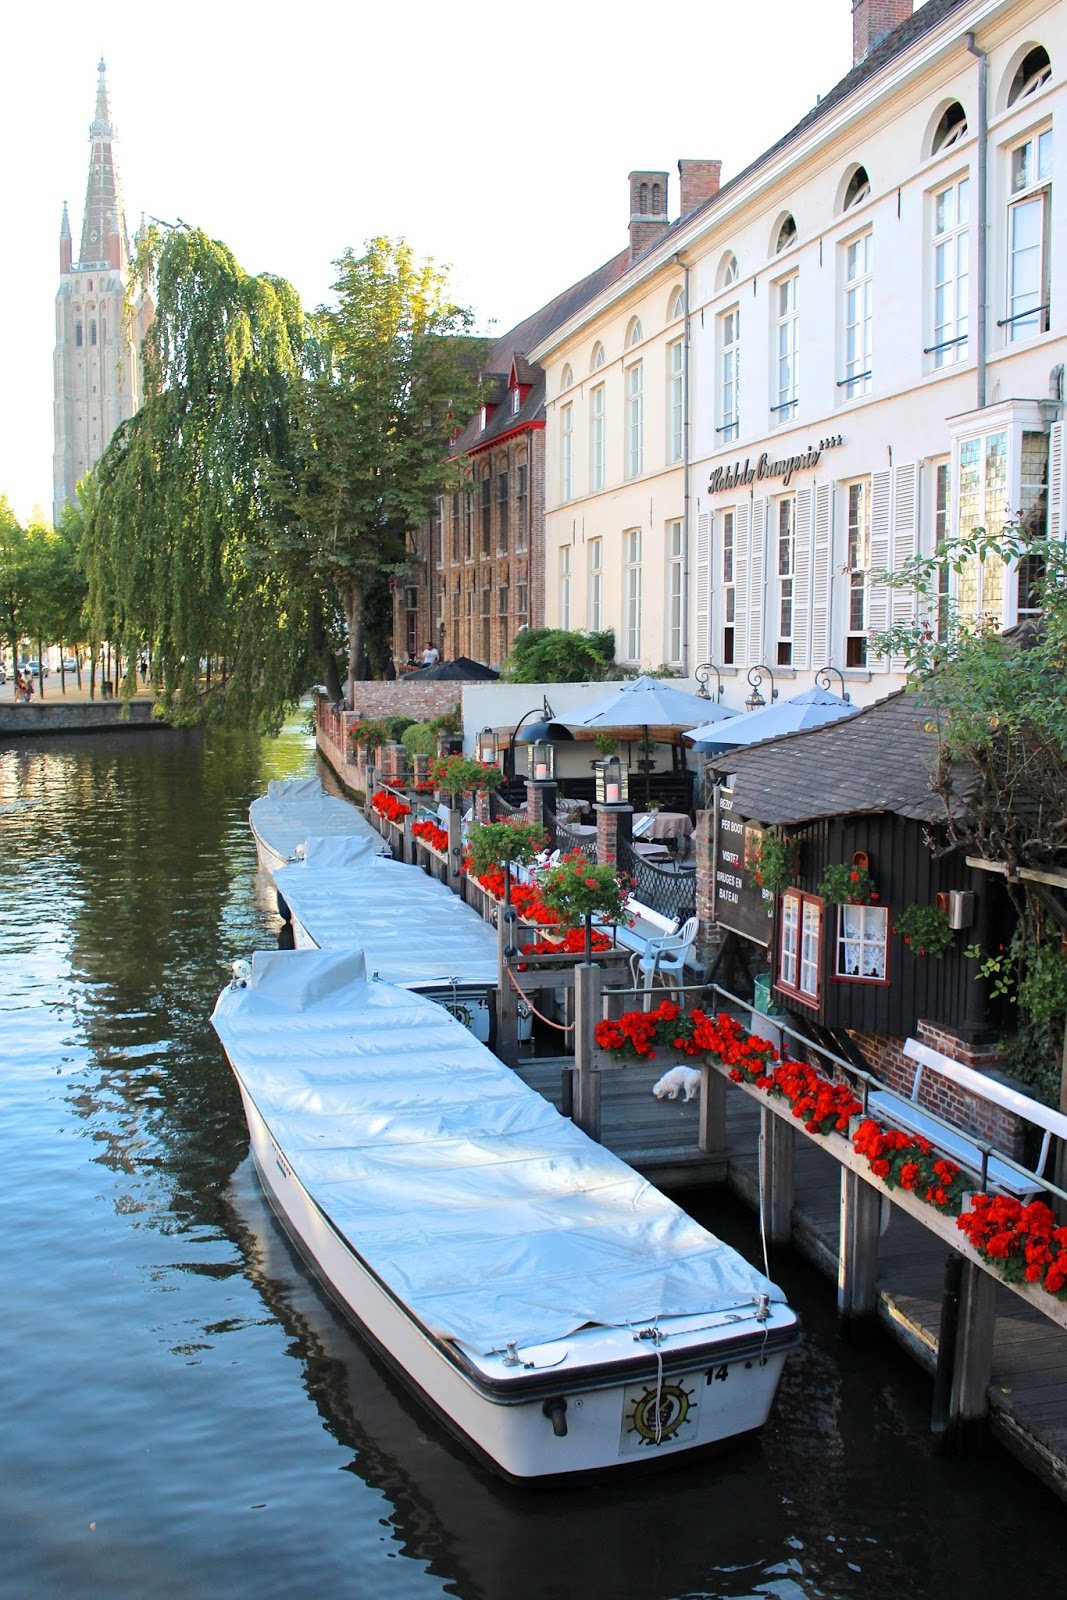 Beautiful canals and boats of Bruges in August